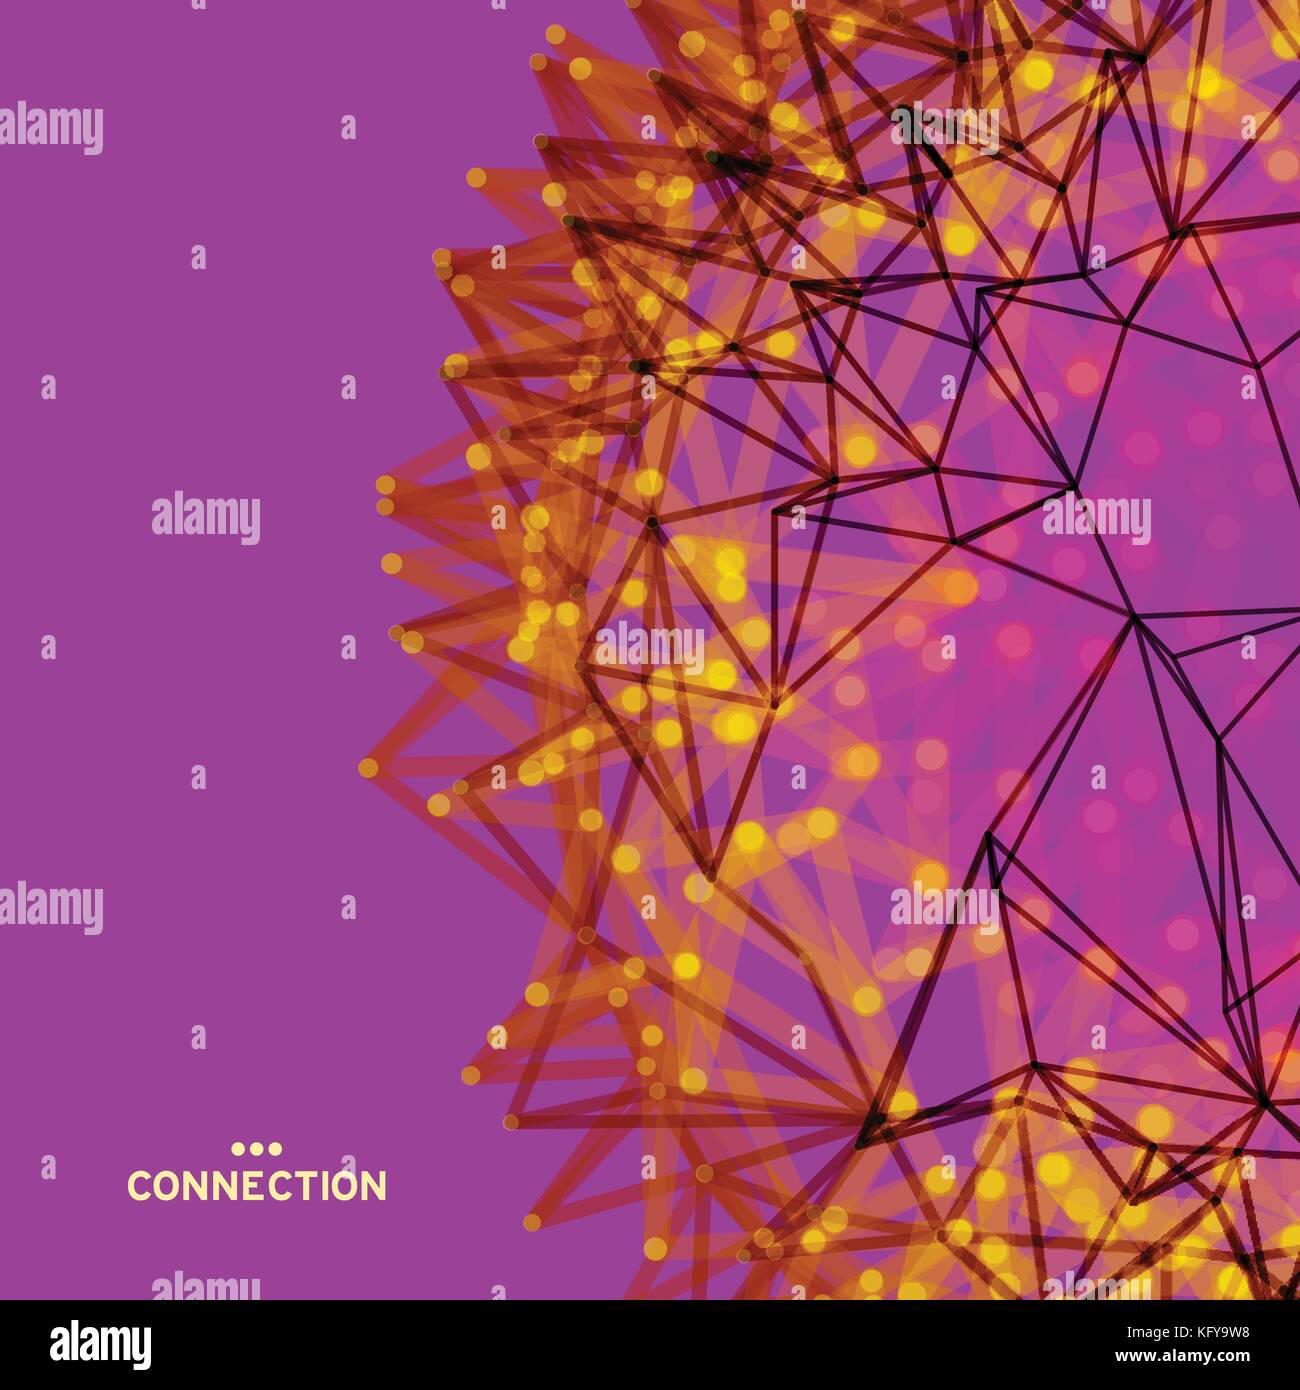 Scientific illustration with connected lines and dots. Luminous microscopic forms. Glowing grid. Connection structure. Stock Vector